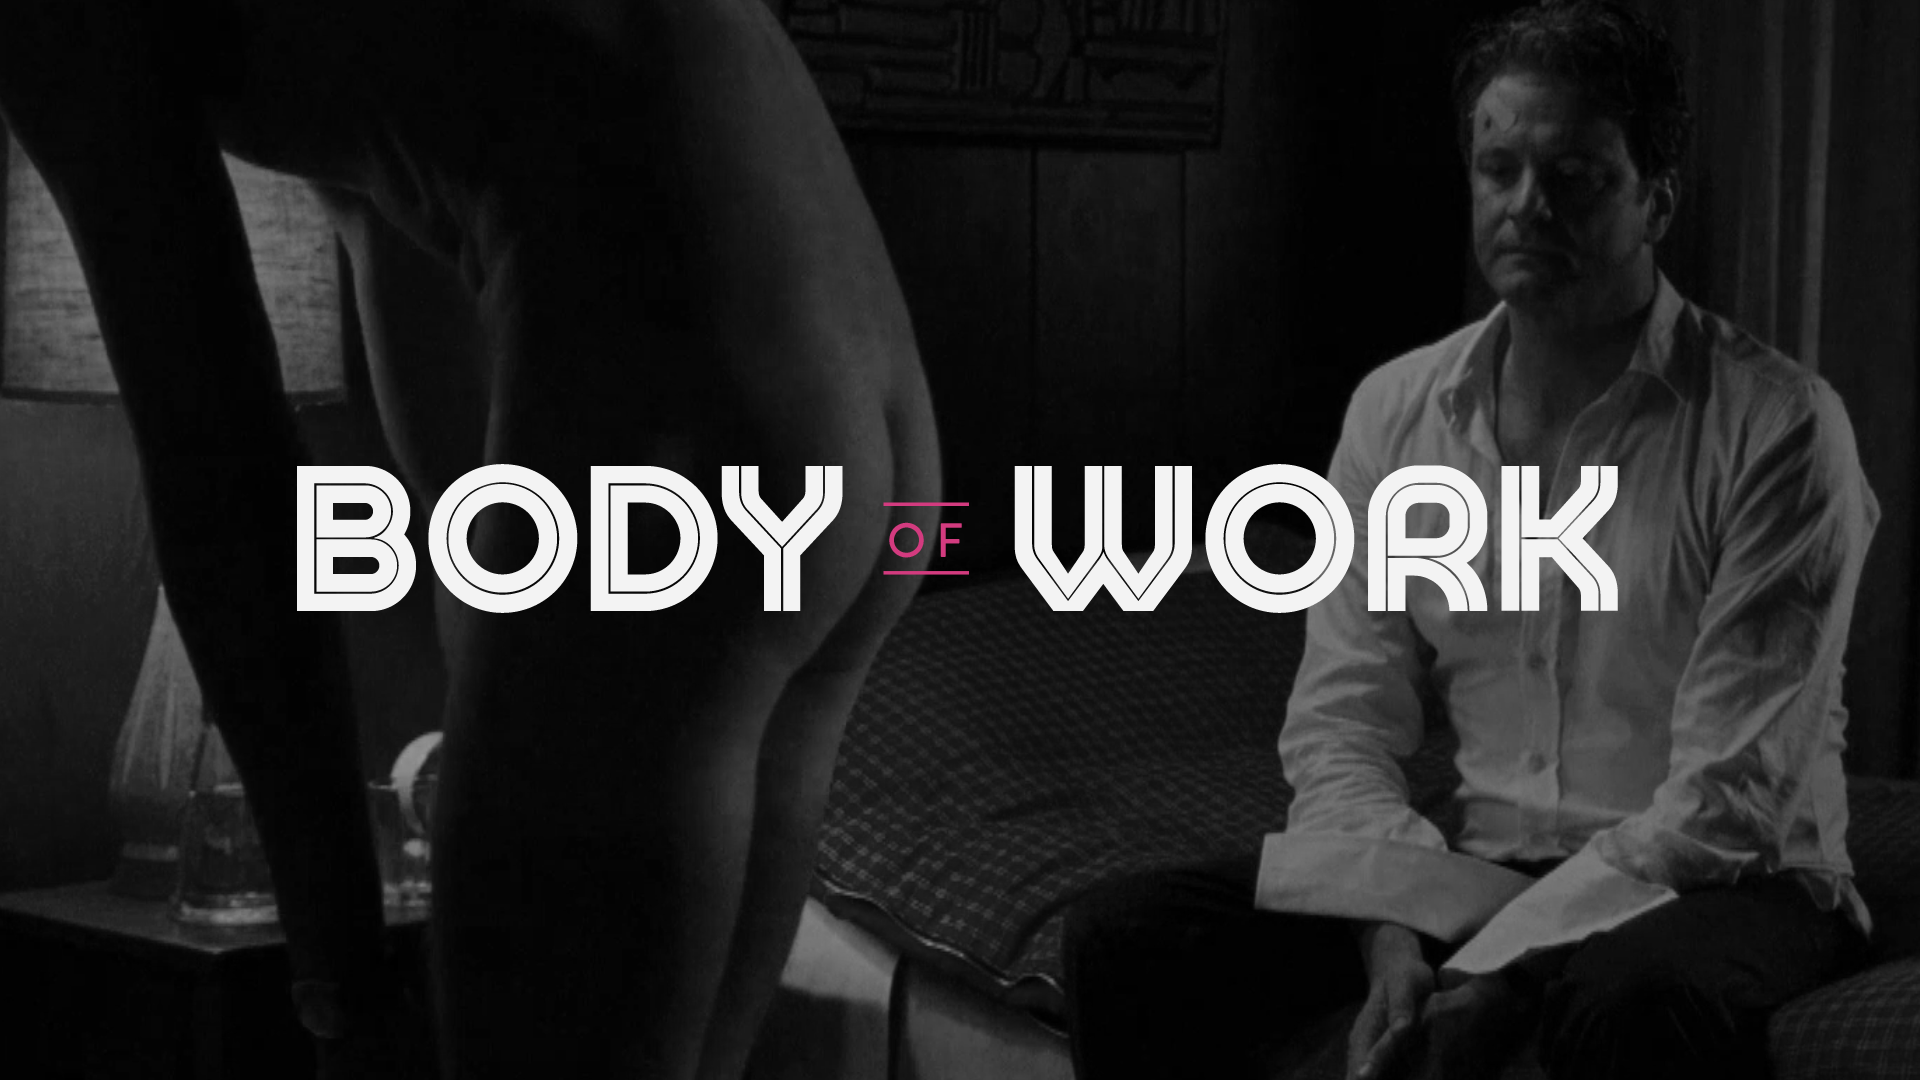 Bodyofwork actor 00 00 03 15 still002 nude preview image